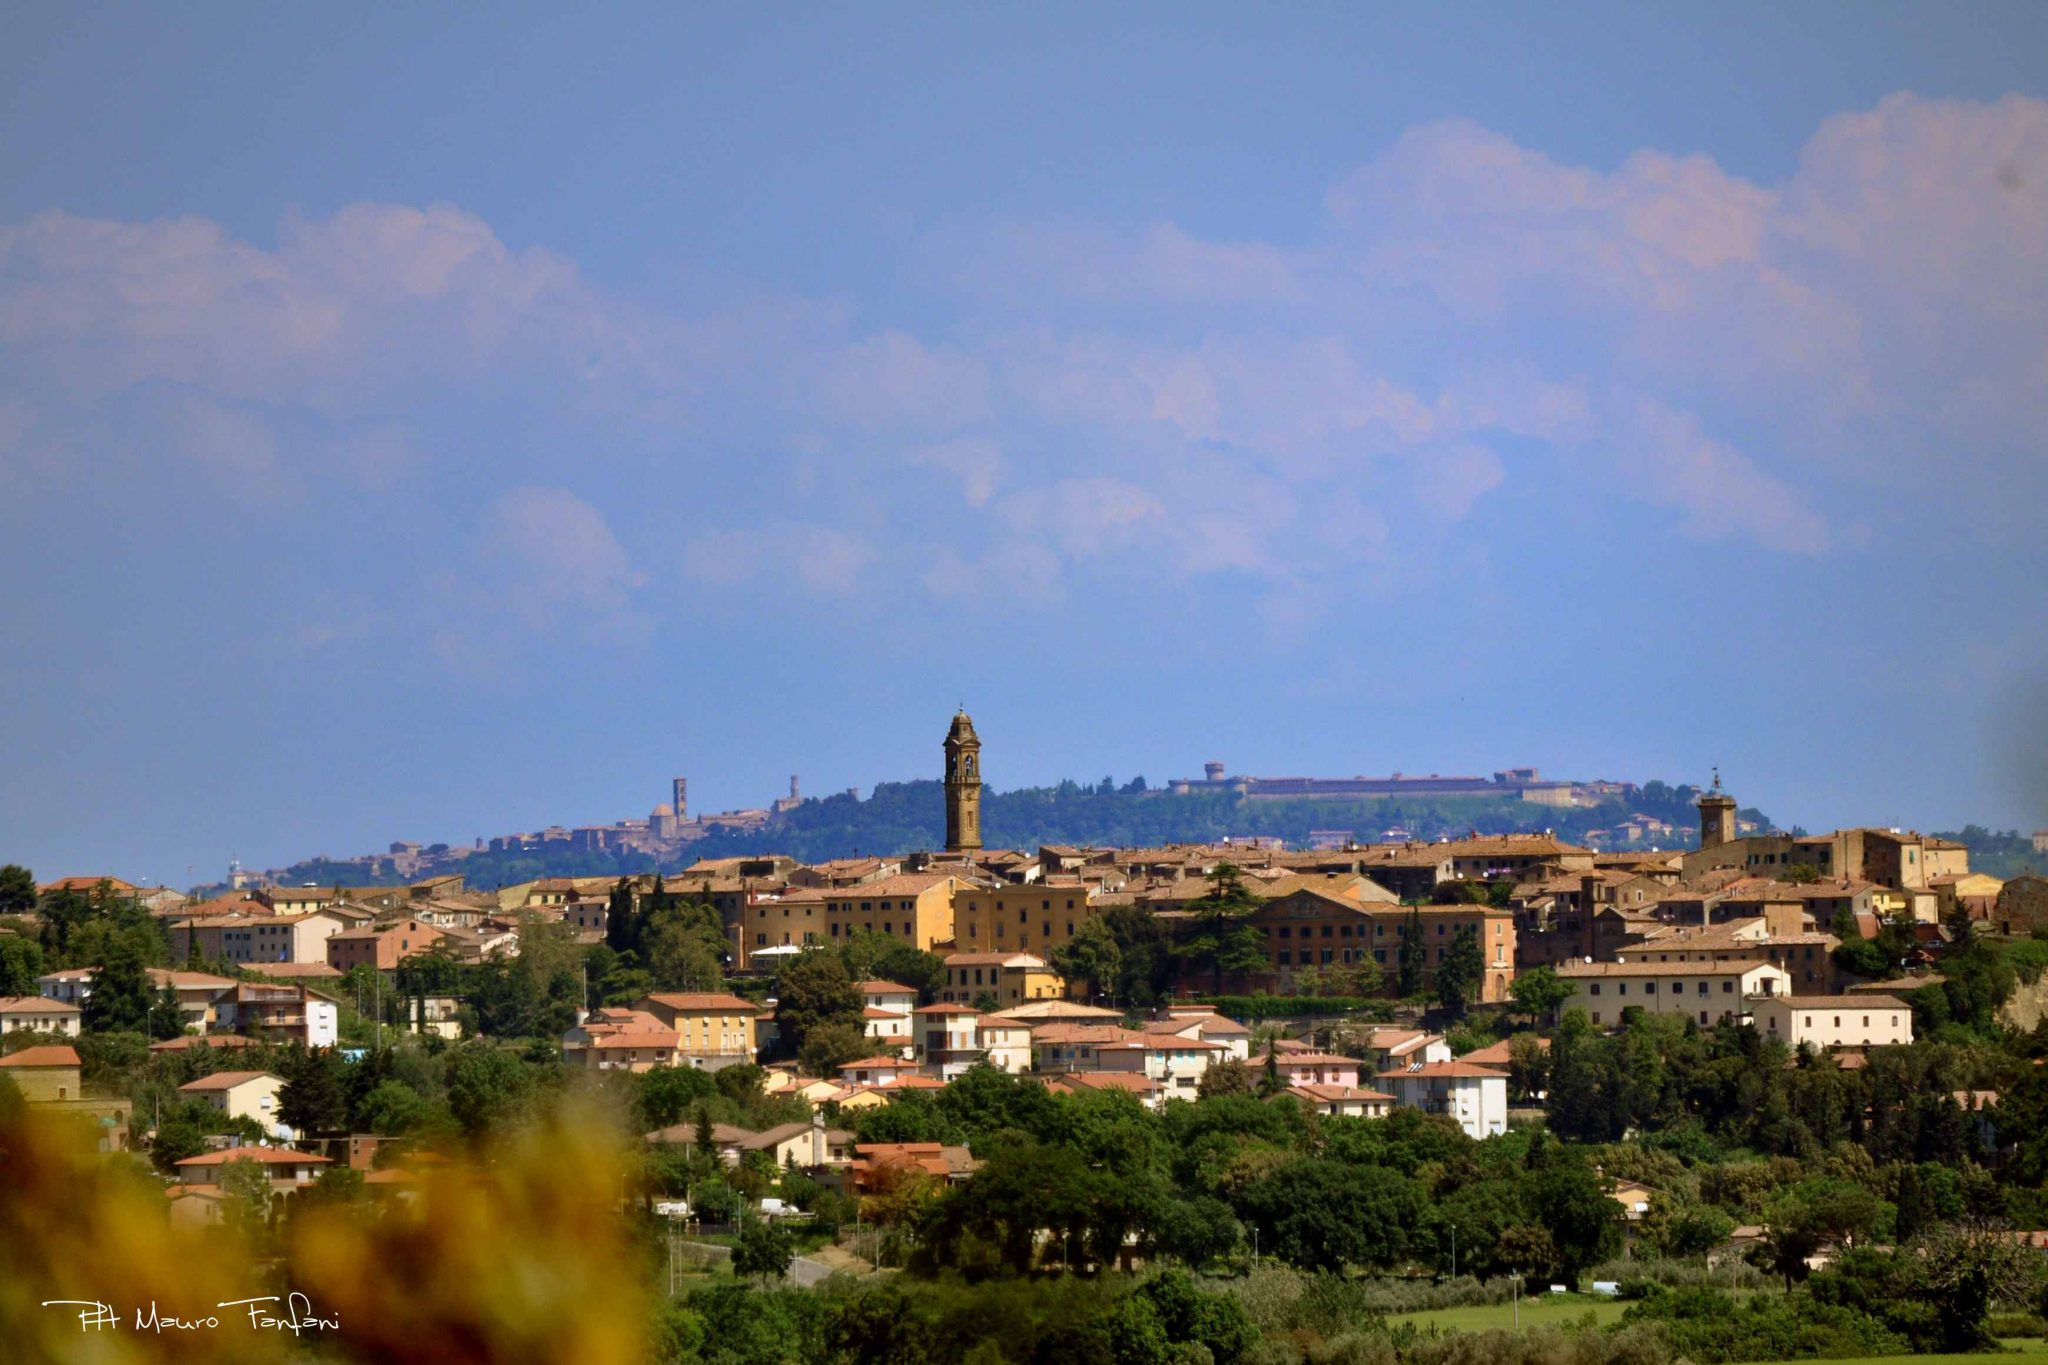 Pomarance (Volterra in the background)